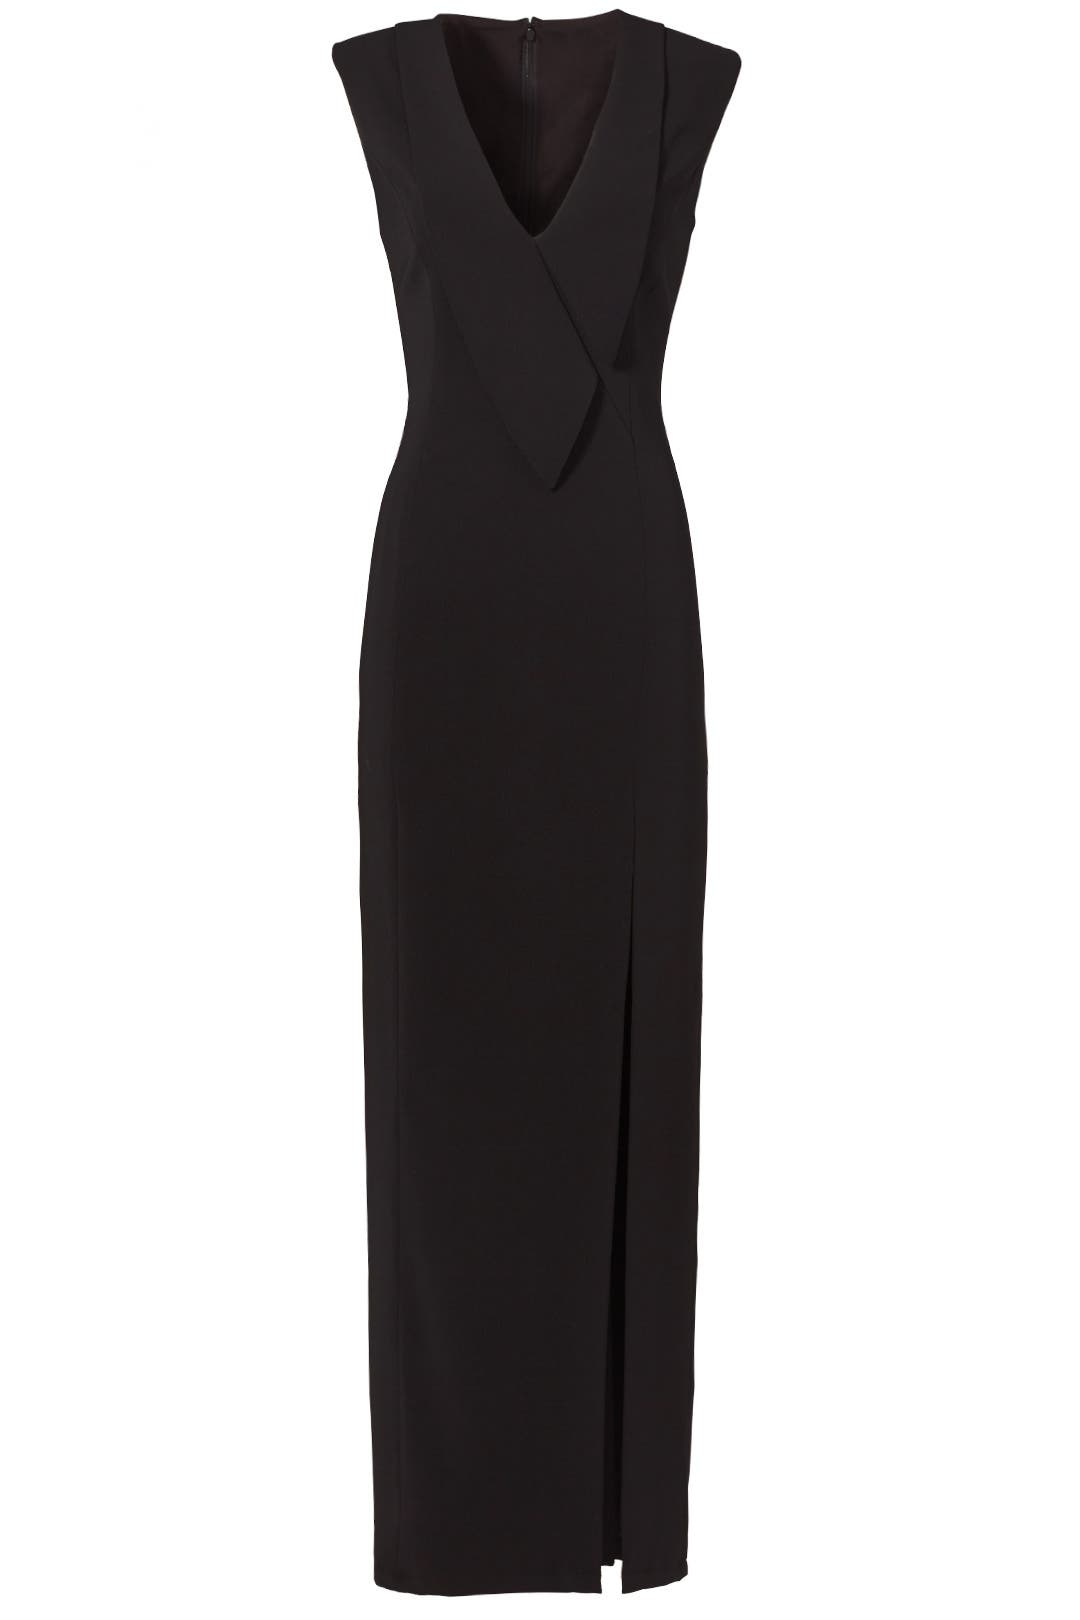 Tuxedo Wrap Gown by Slate & Willow for $70 - $90   Rent the Runway